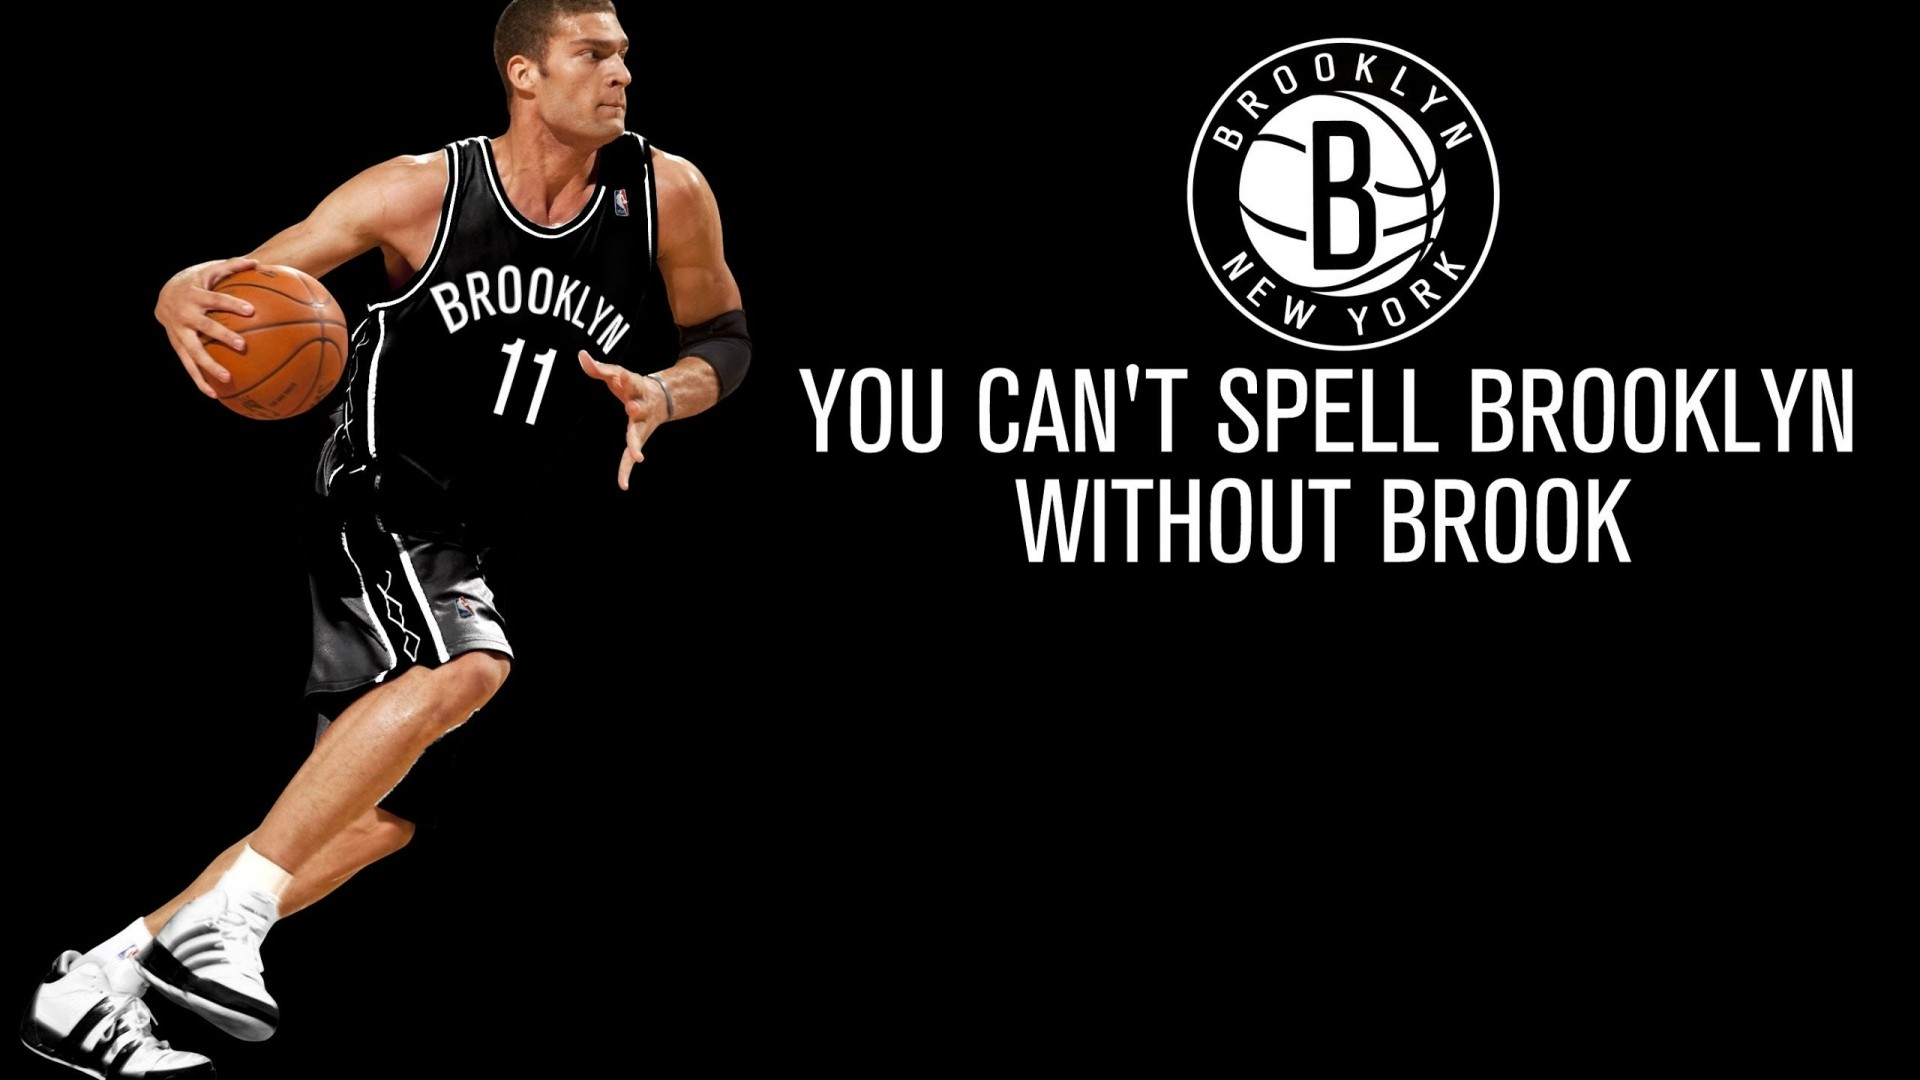 Brooklyn Nets Wallpaper Full HD